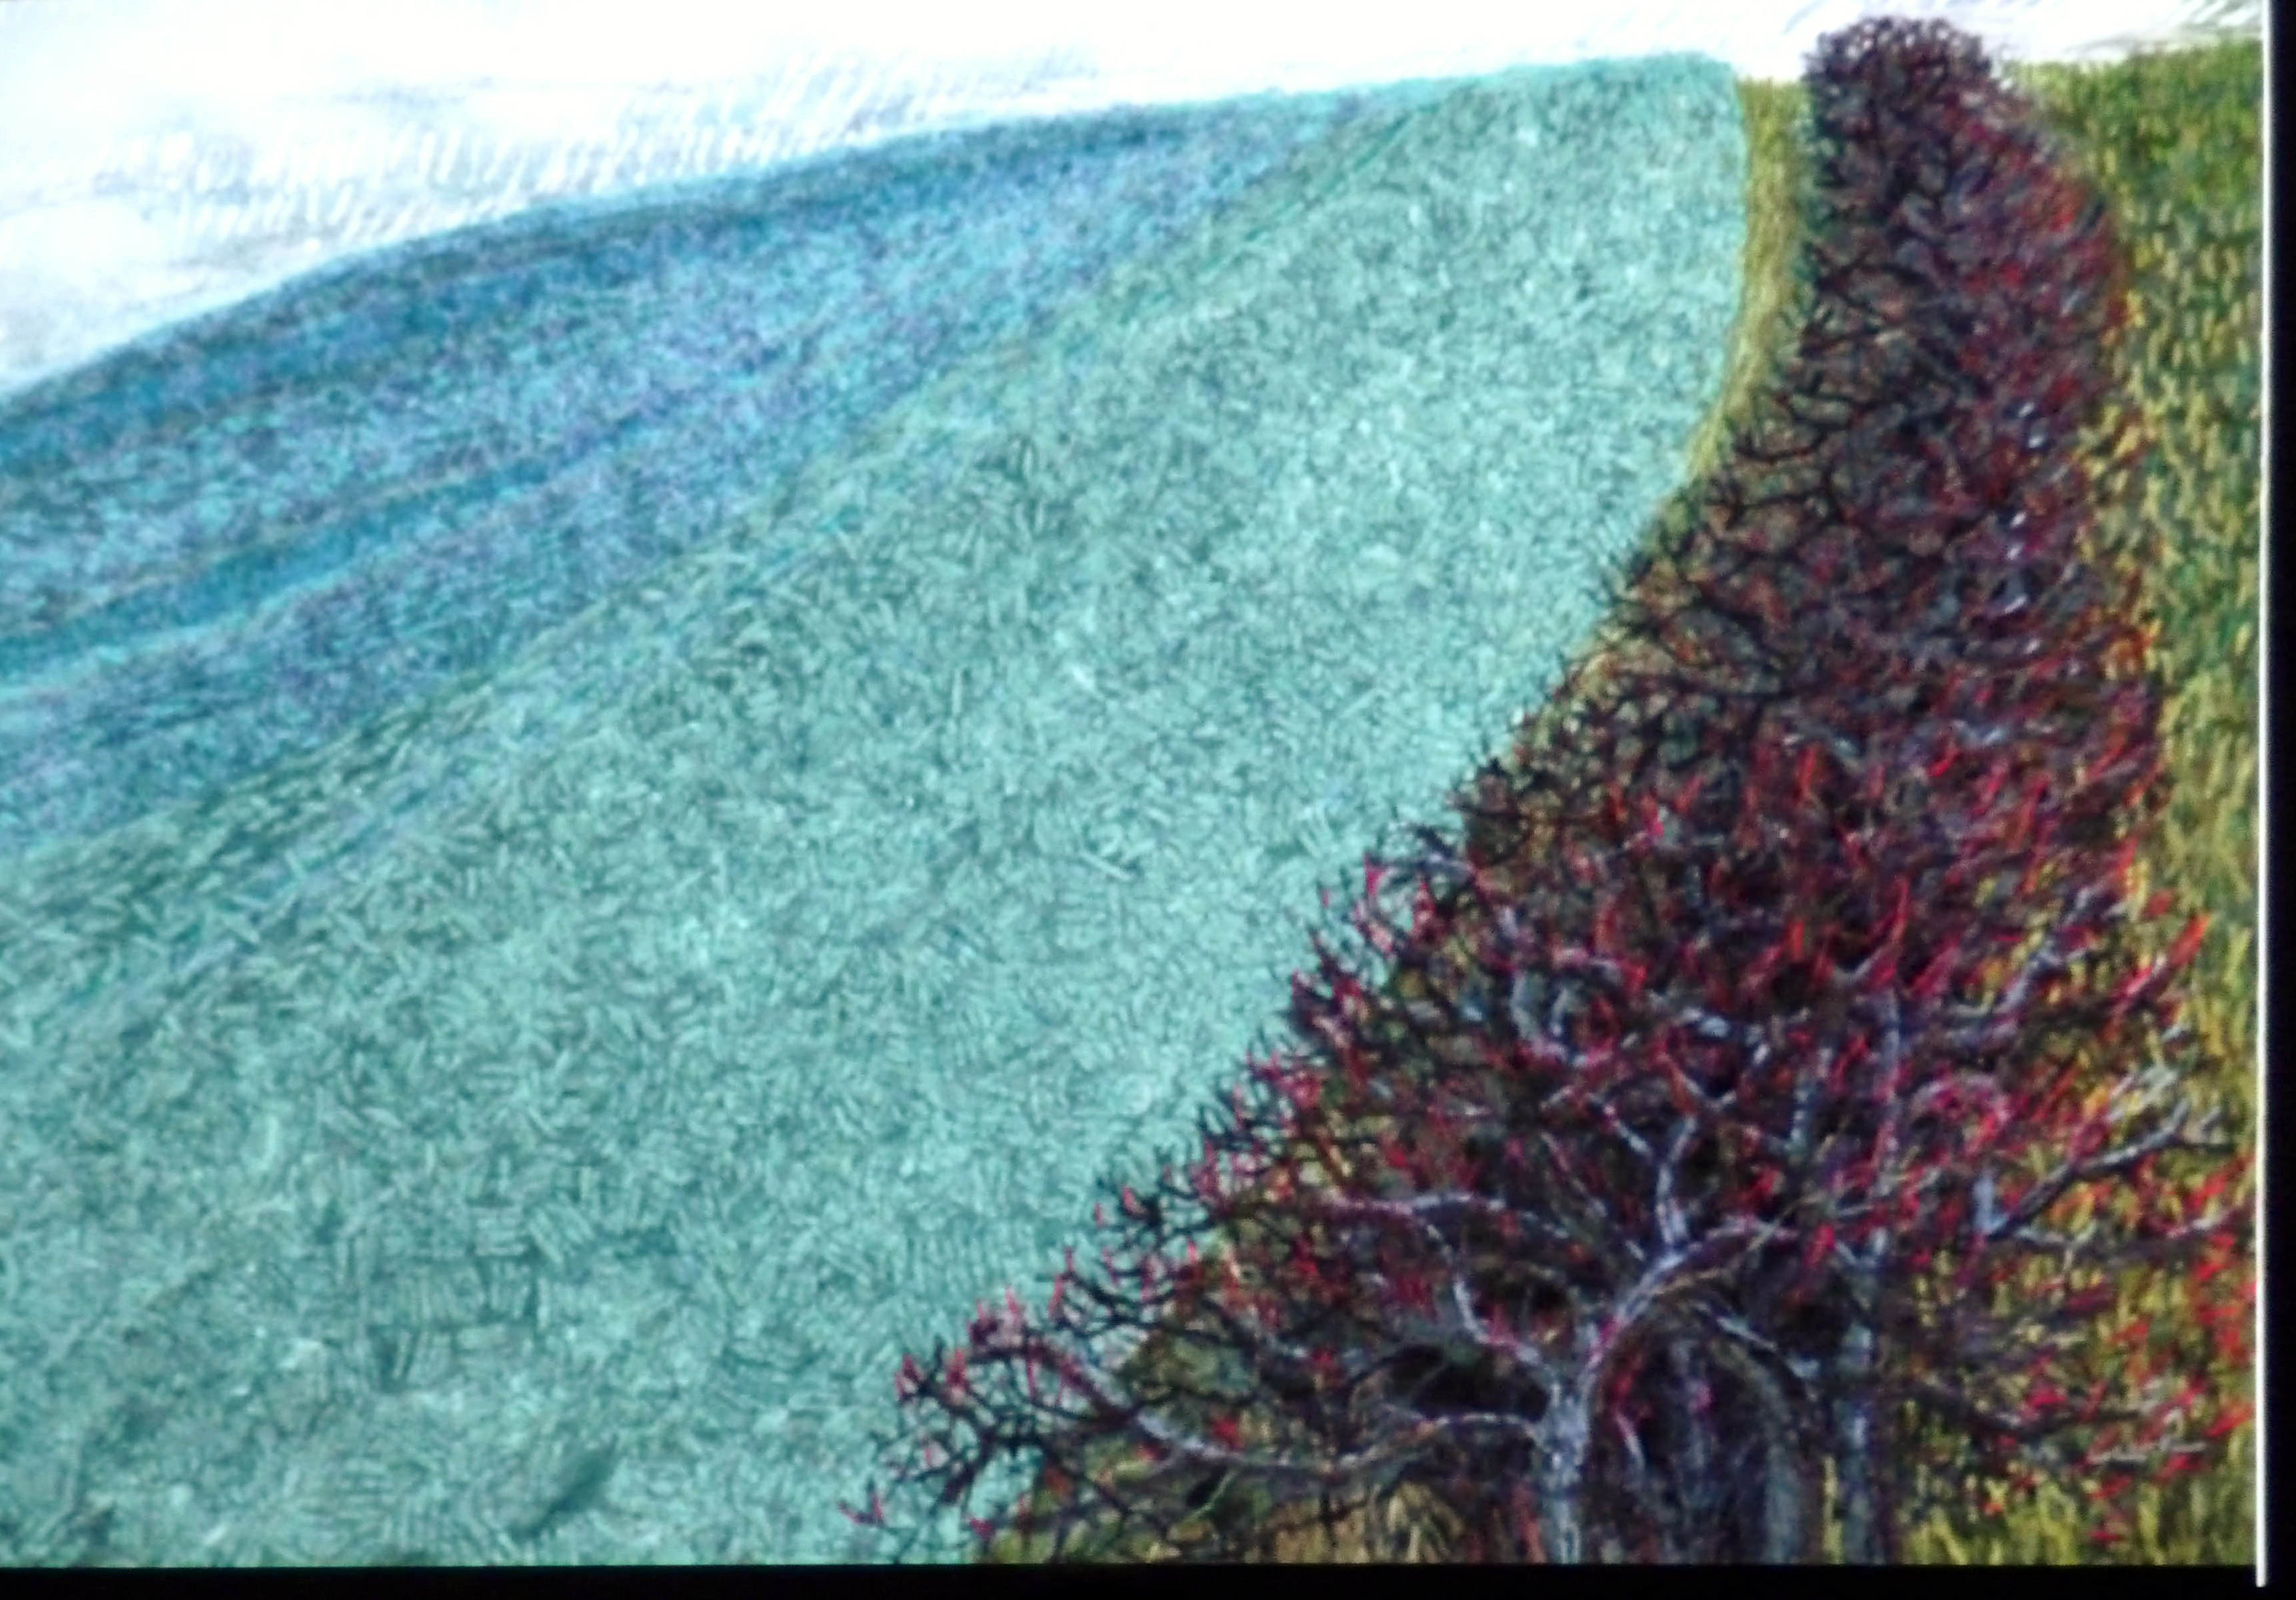 embroidery, based on farmland and hedgerows, by Jan Beaney